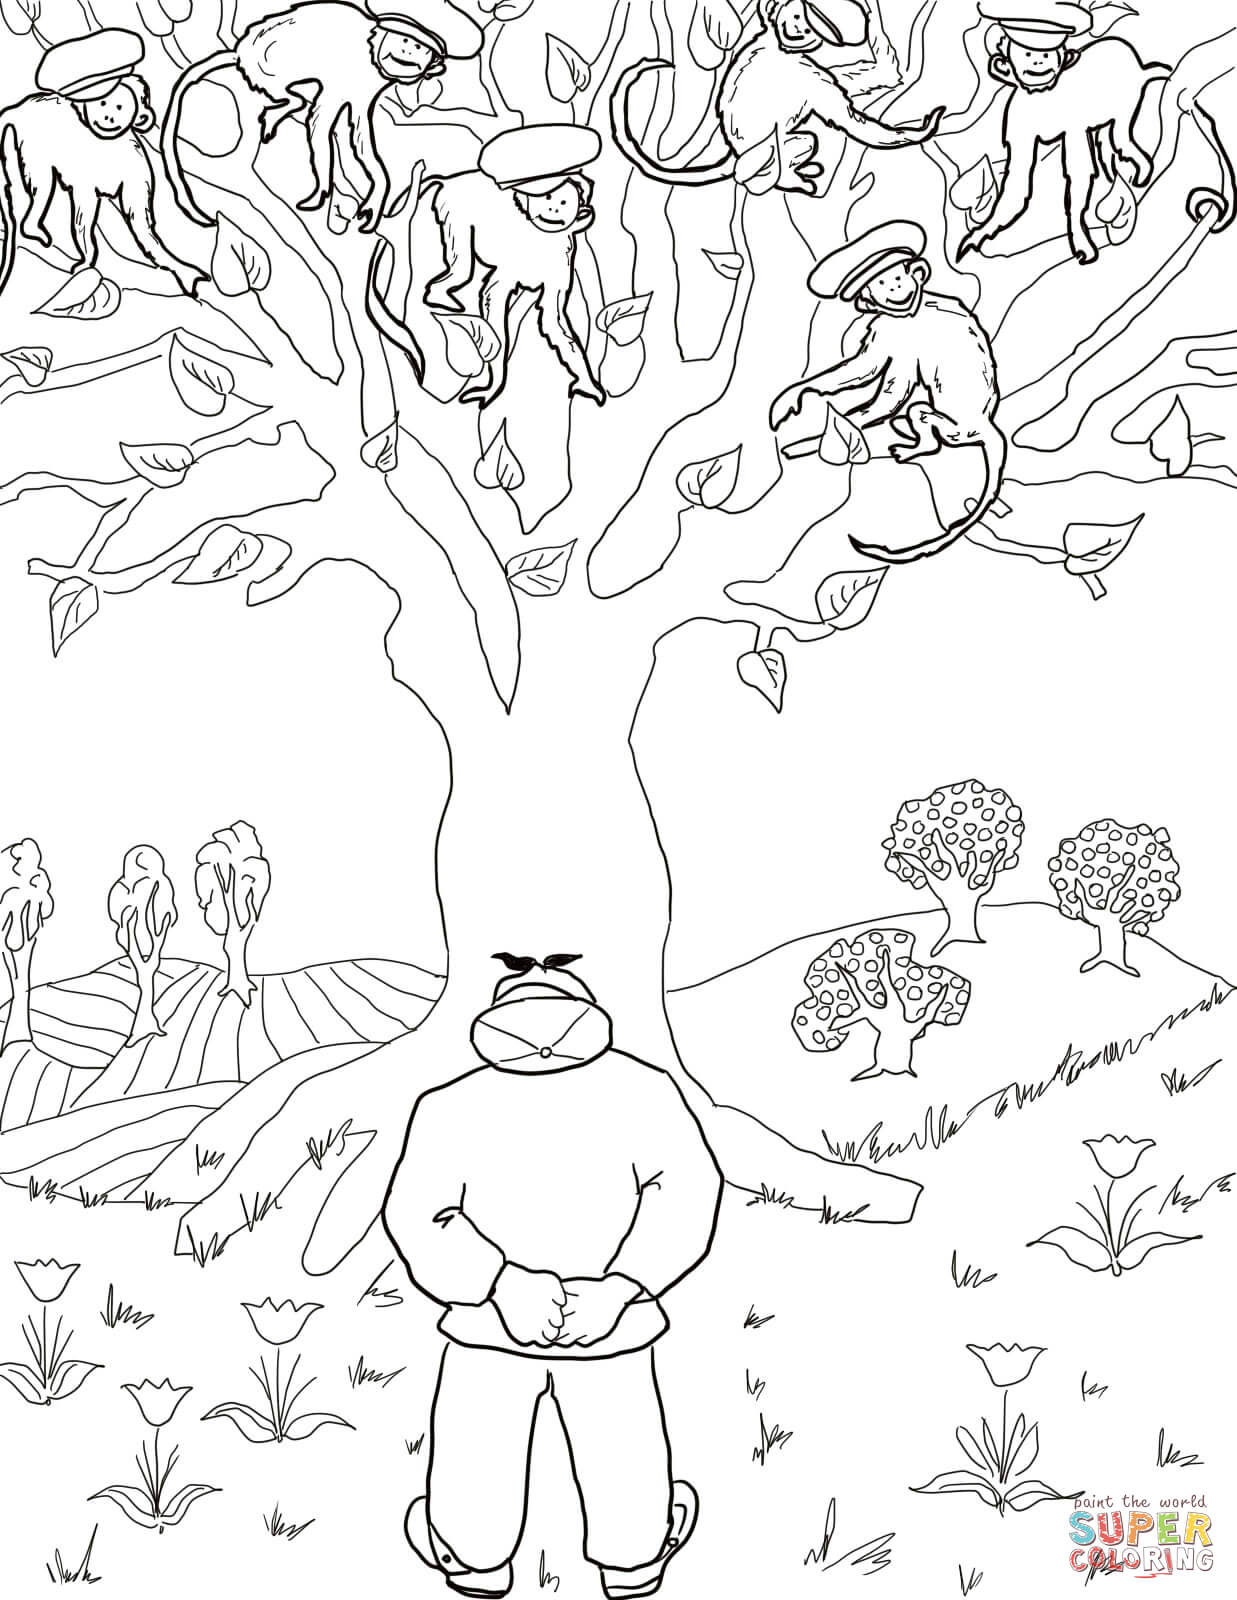 Caps Gets Stolen By The Monkeys Coloring Page